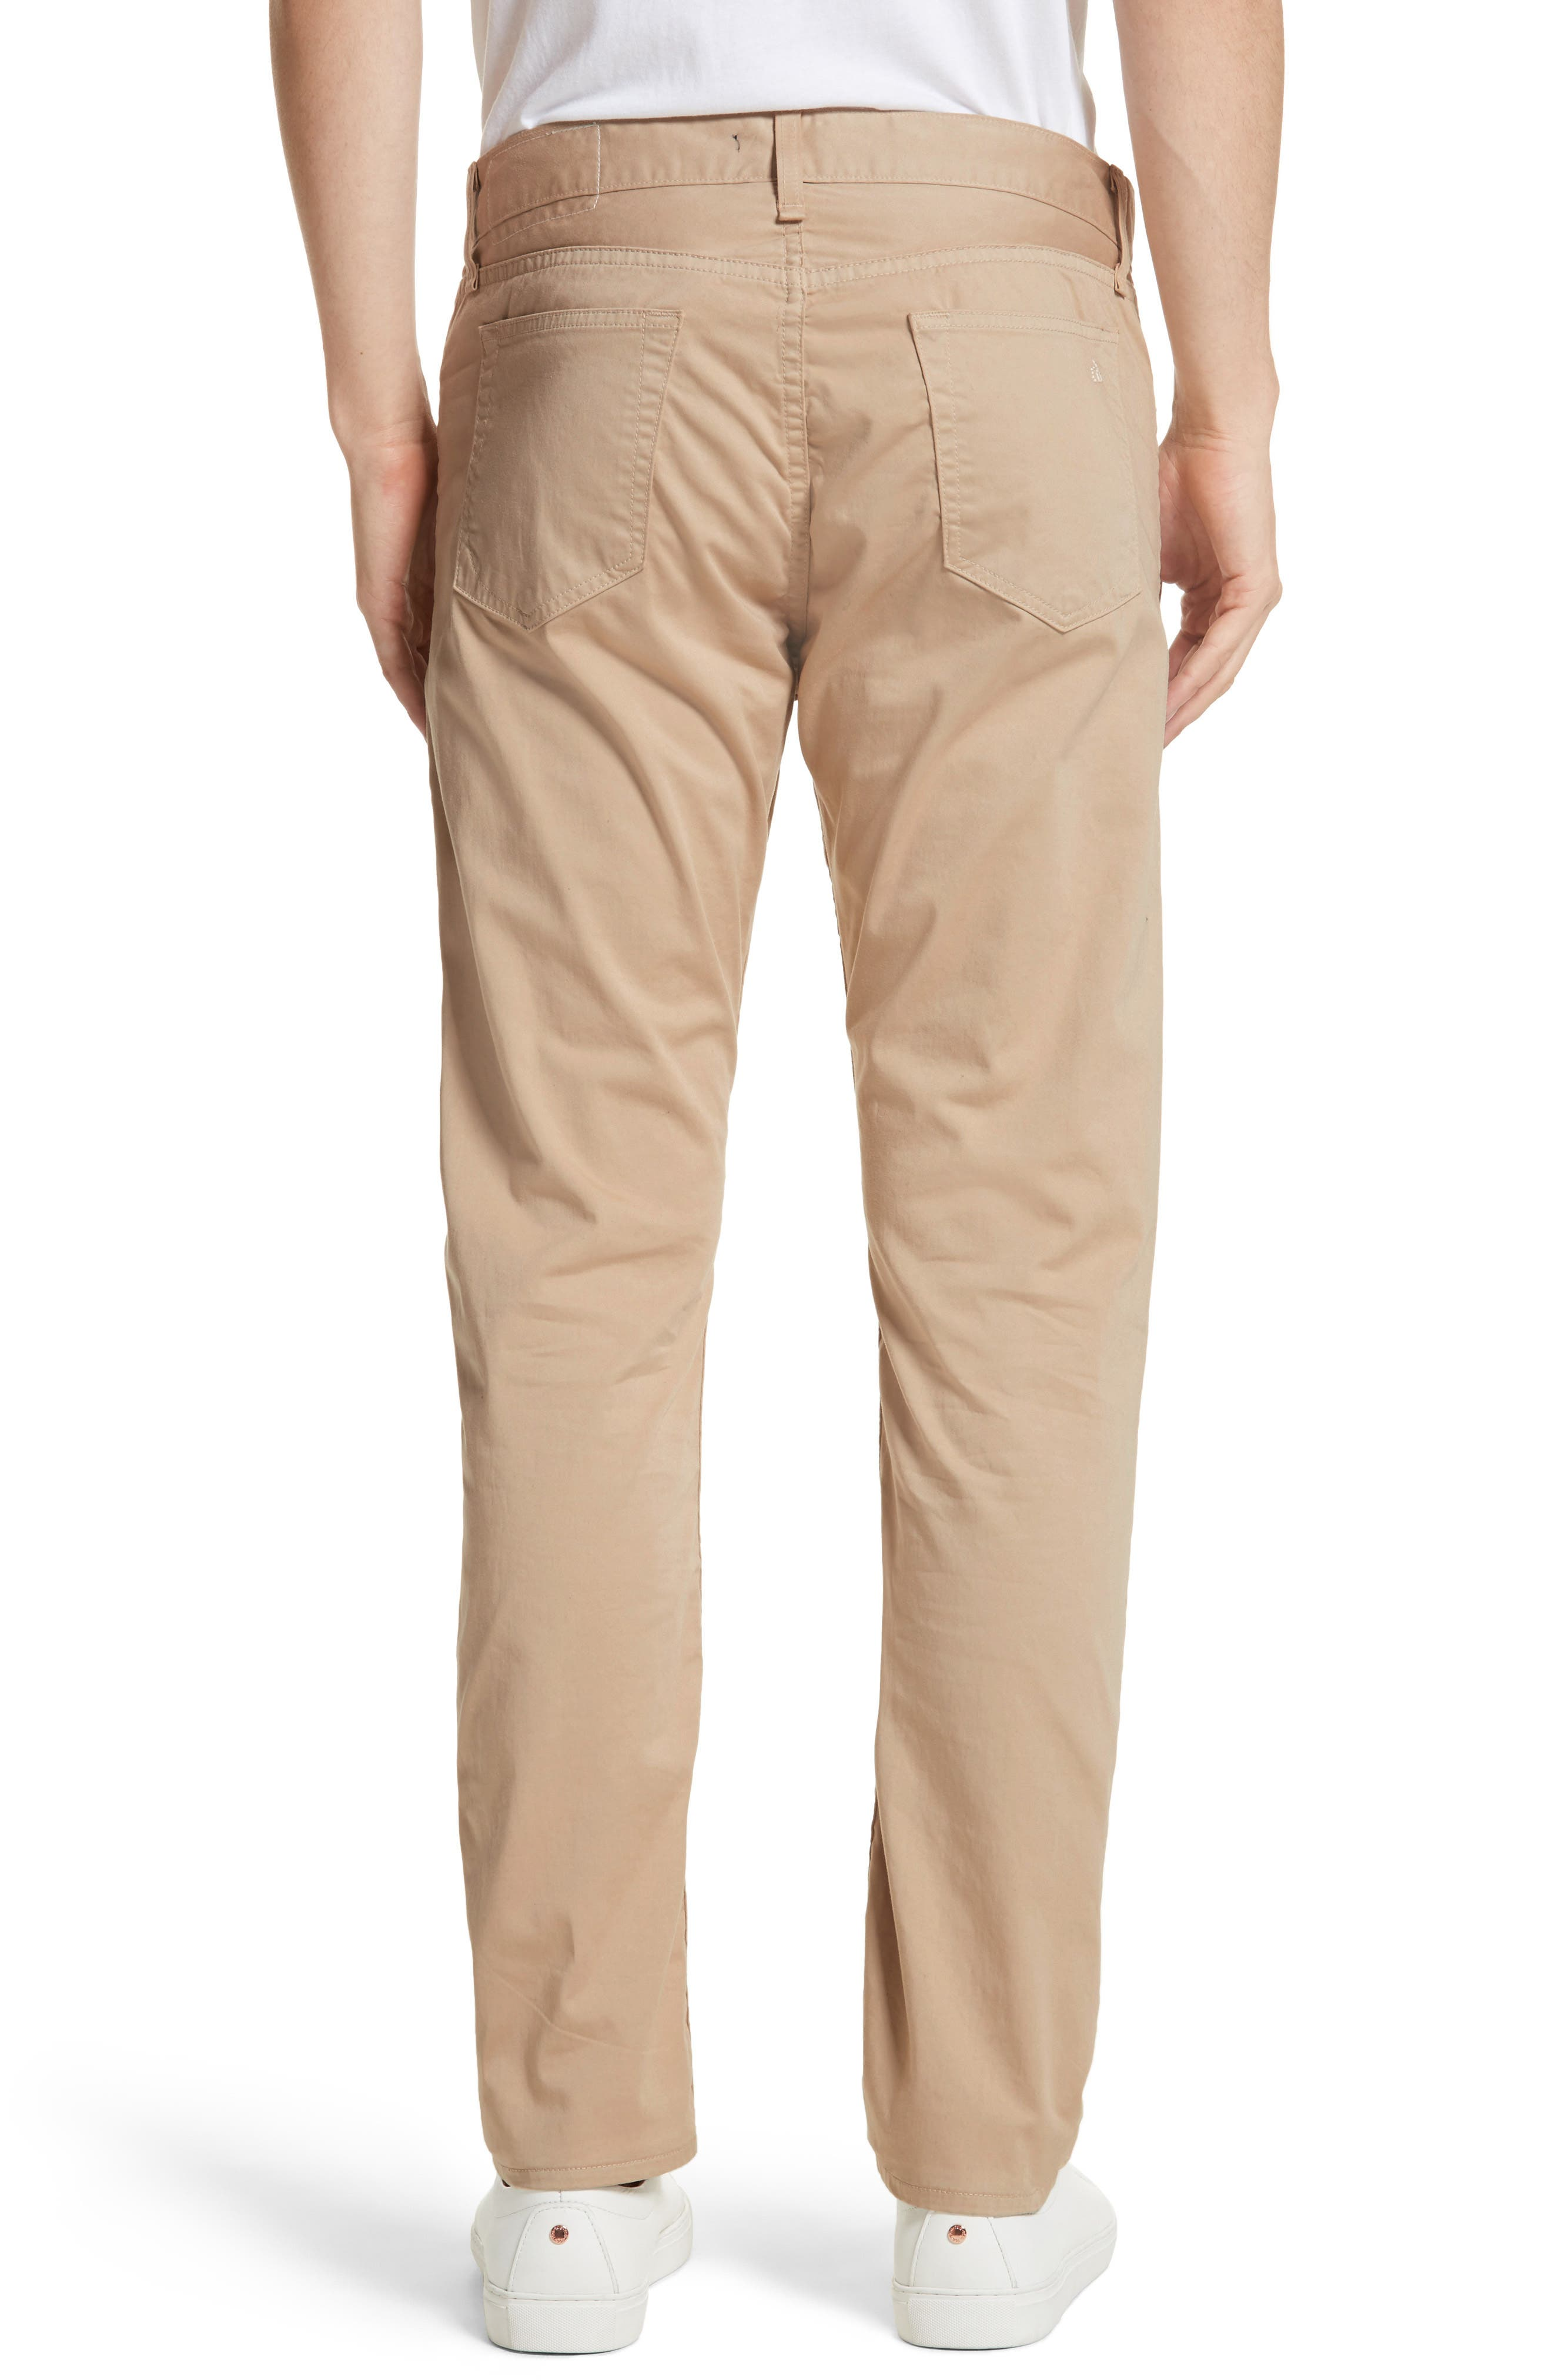 Fit 2 Five-Pocket Twill Pants,                             Alternate thumbnail 2, color,                             Beige